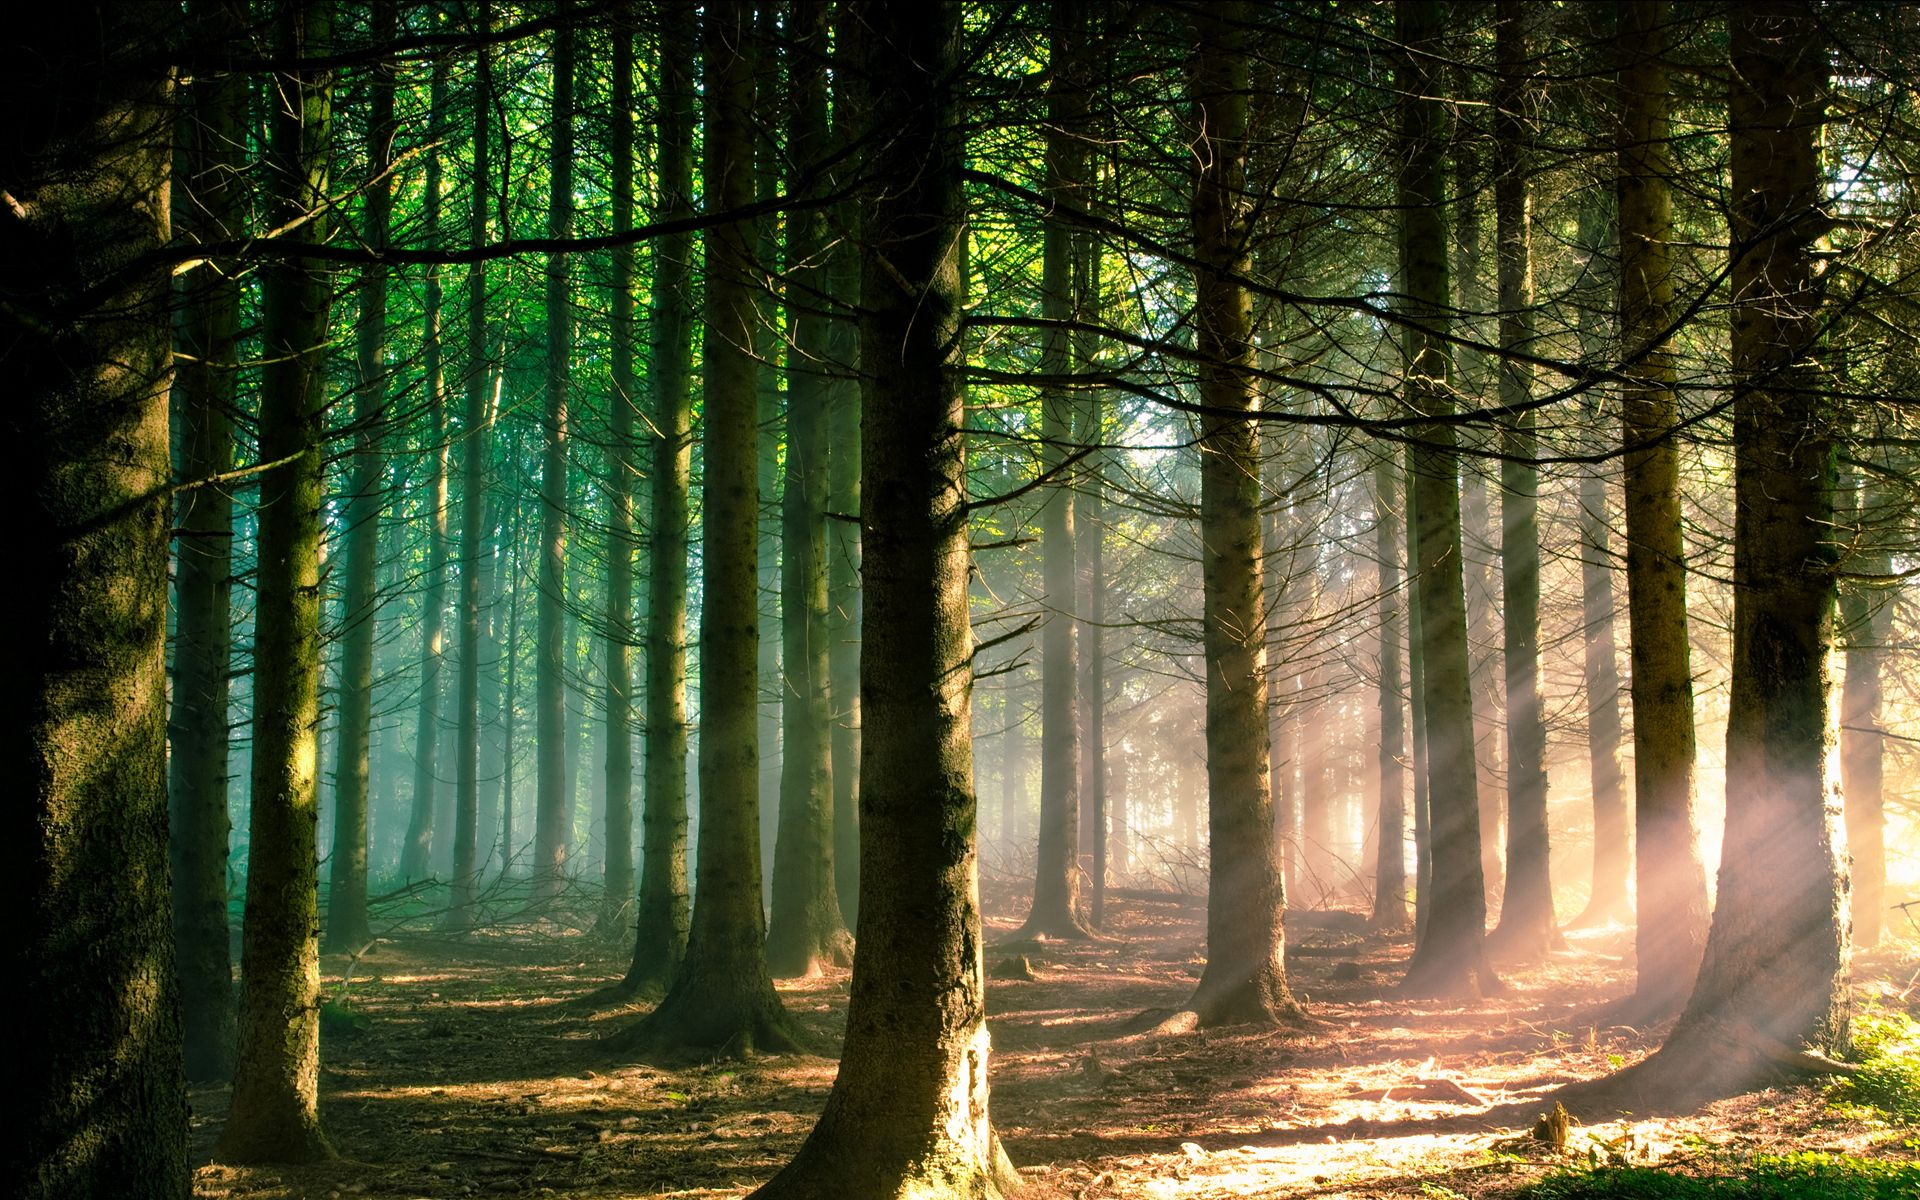 Forest Wall Paper wallpaper trees forest - wallpapersafari